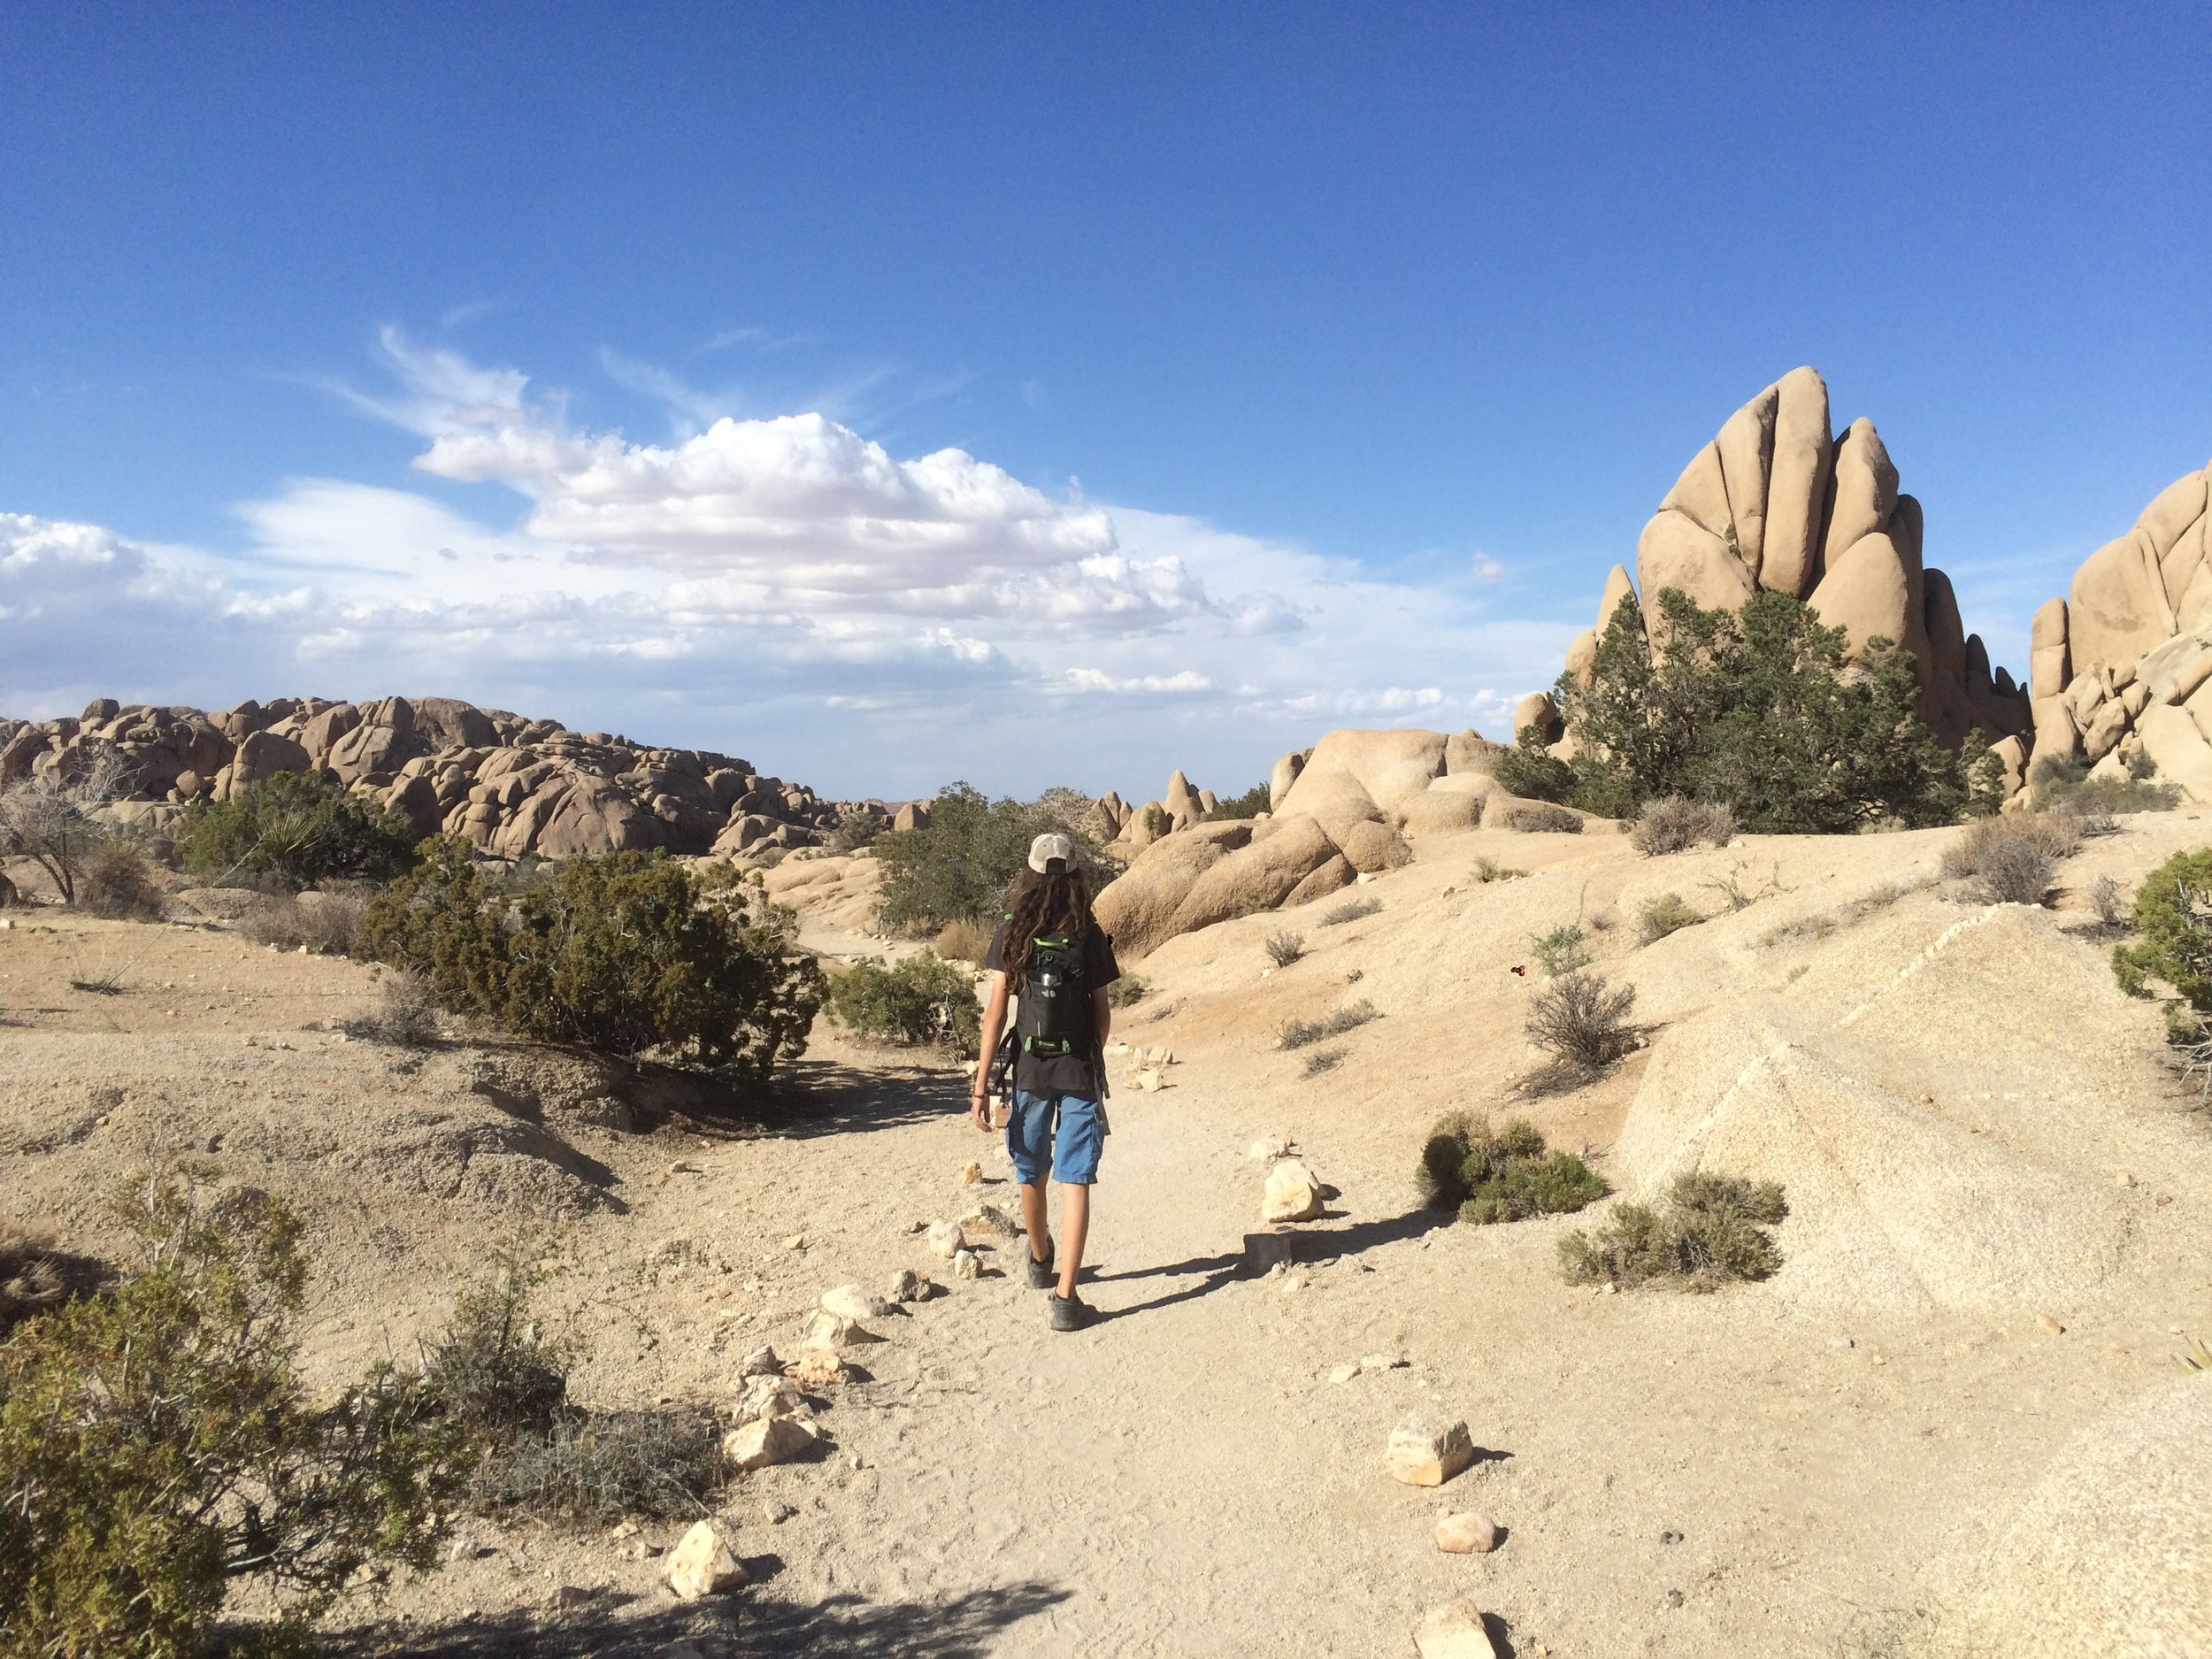 The trail system in Joshua Tree is both accessible and extensive.